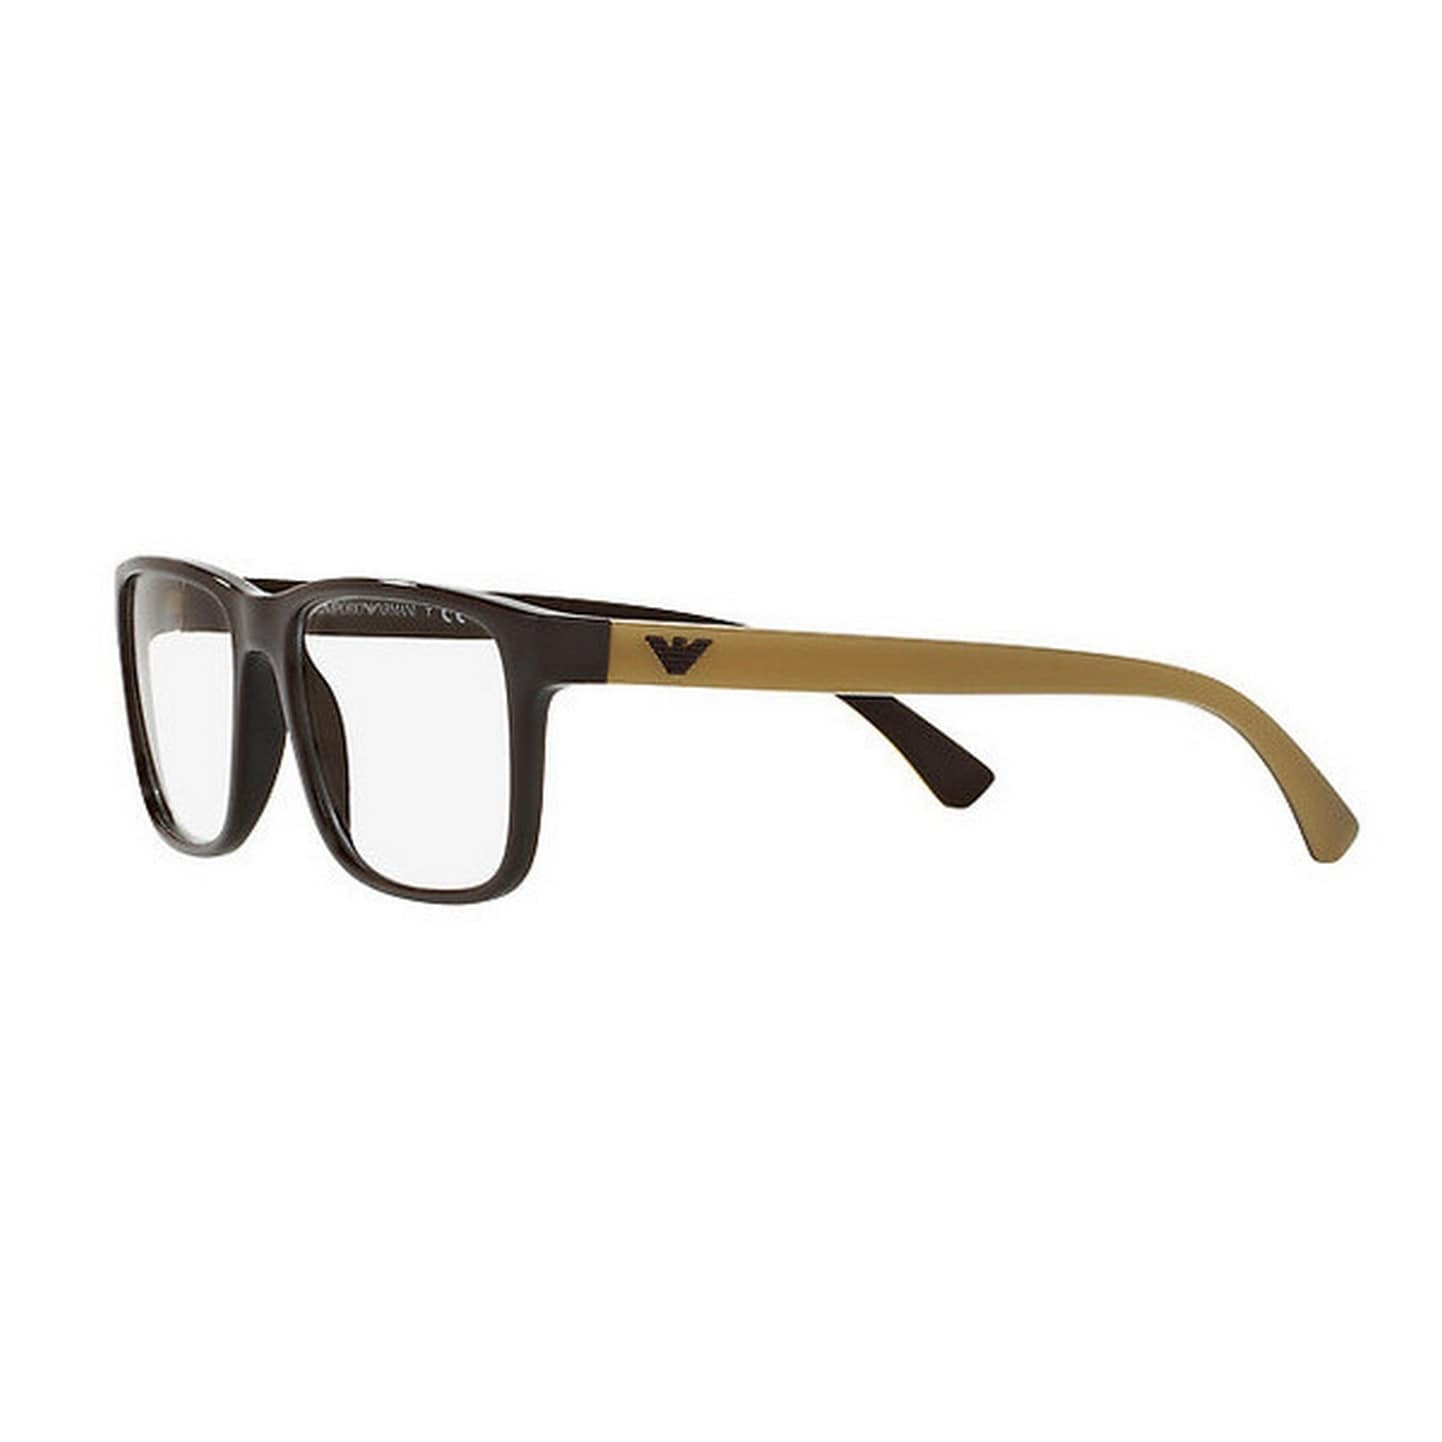 f84bcdfe928 Shop Emporio Armani Men s EA3103 5562 55 Rectangle Plastic Brown Clear  Eyeglasses - Free Shipping Today - Overstock - 14778929